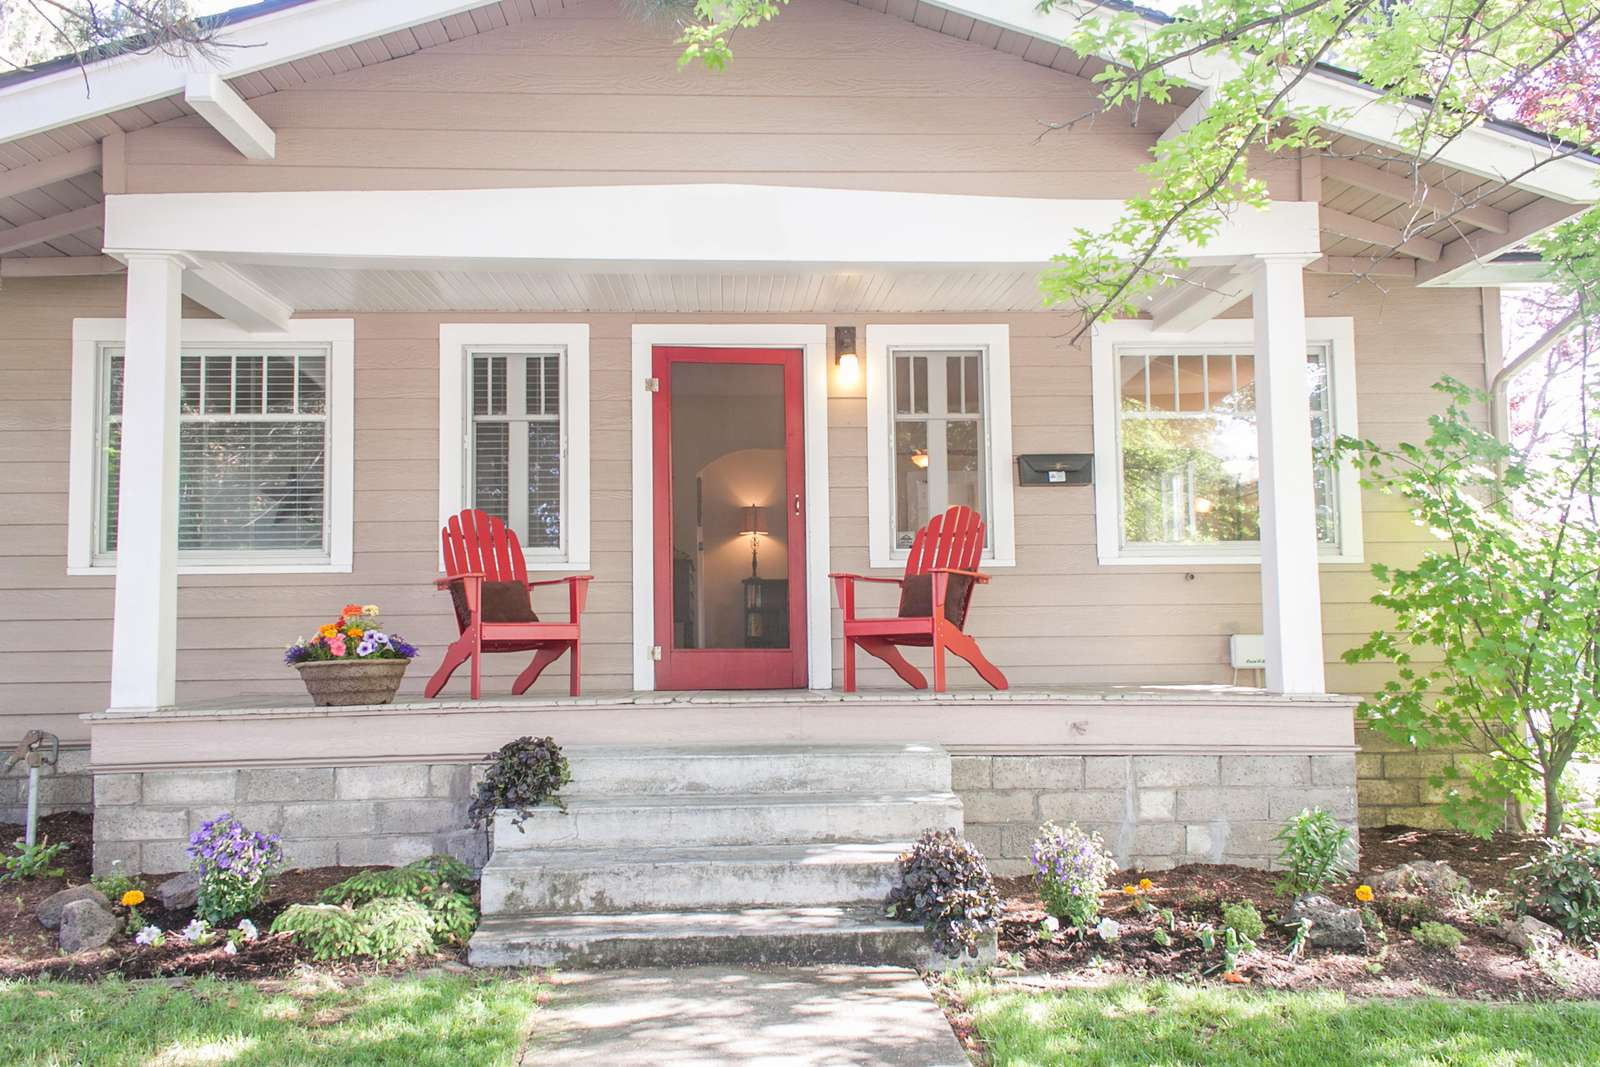 Historic Bernhard Justice Bungalow a 1926 craftsman bungalow with modern comforts. - property